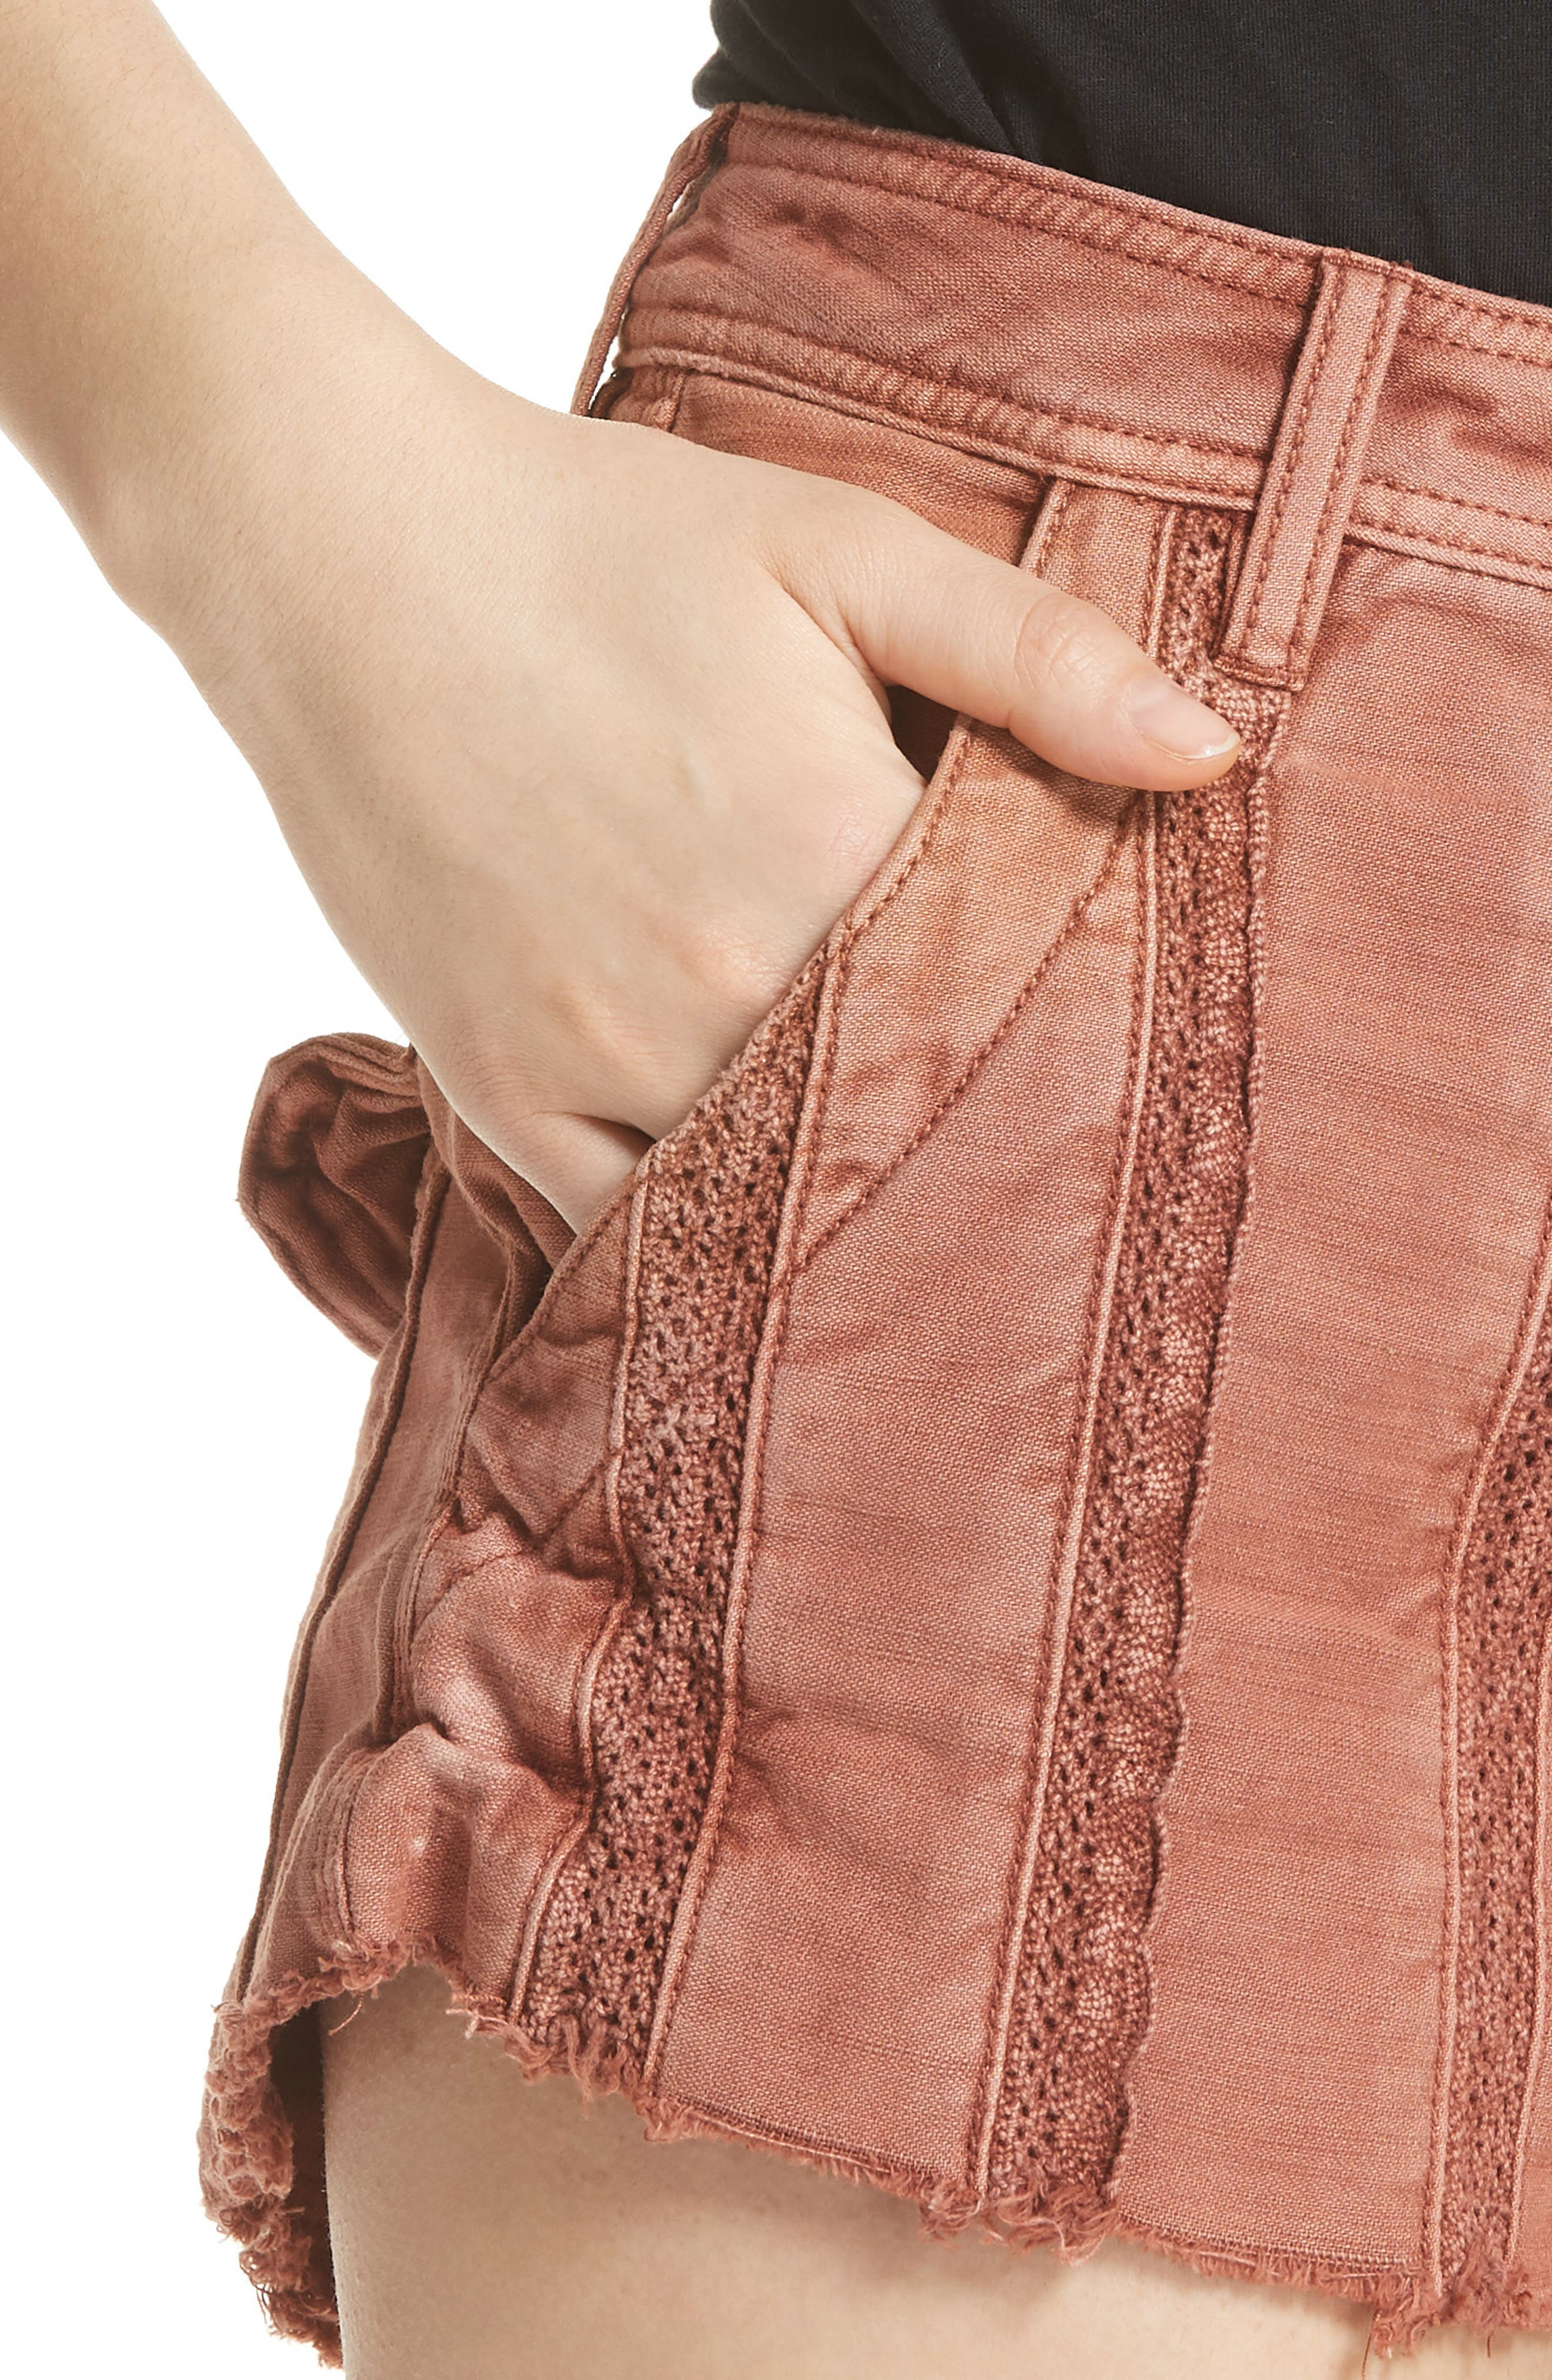 Great Expectations Lace Cutout Shorts,                             Alternate thumbnail 4, color,                             Peach